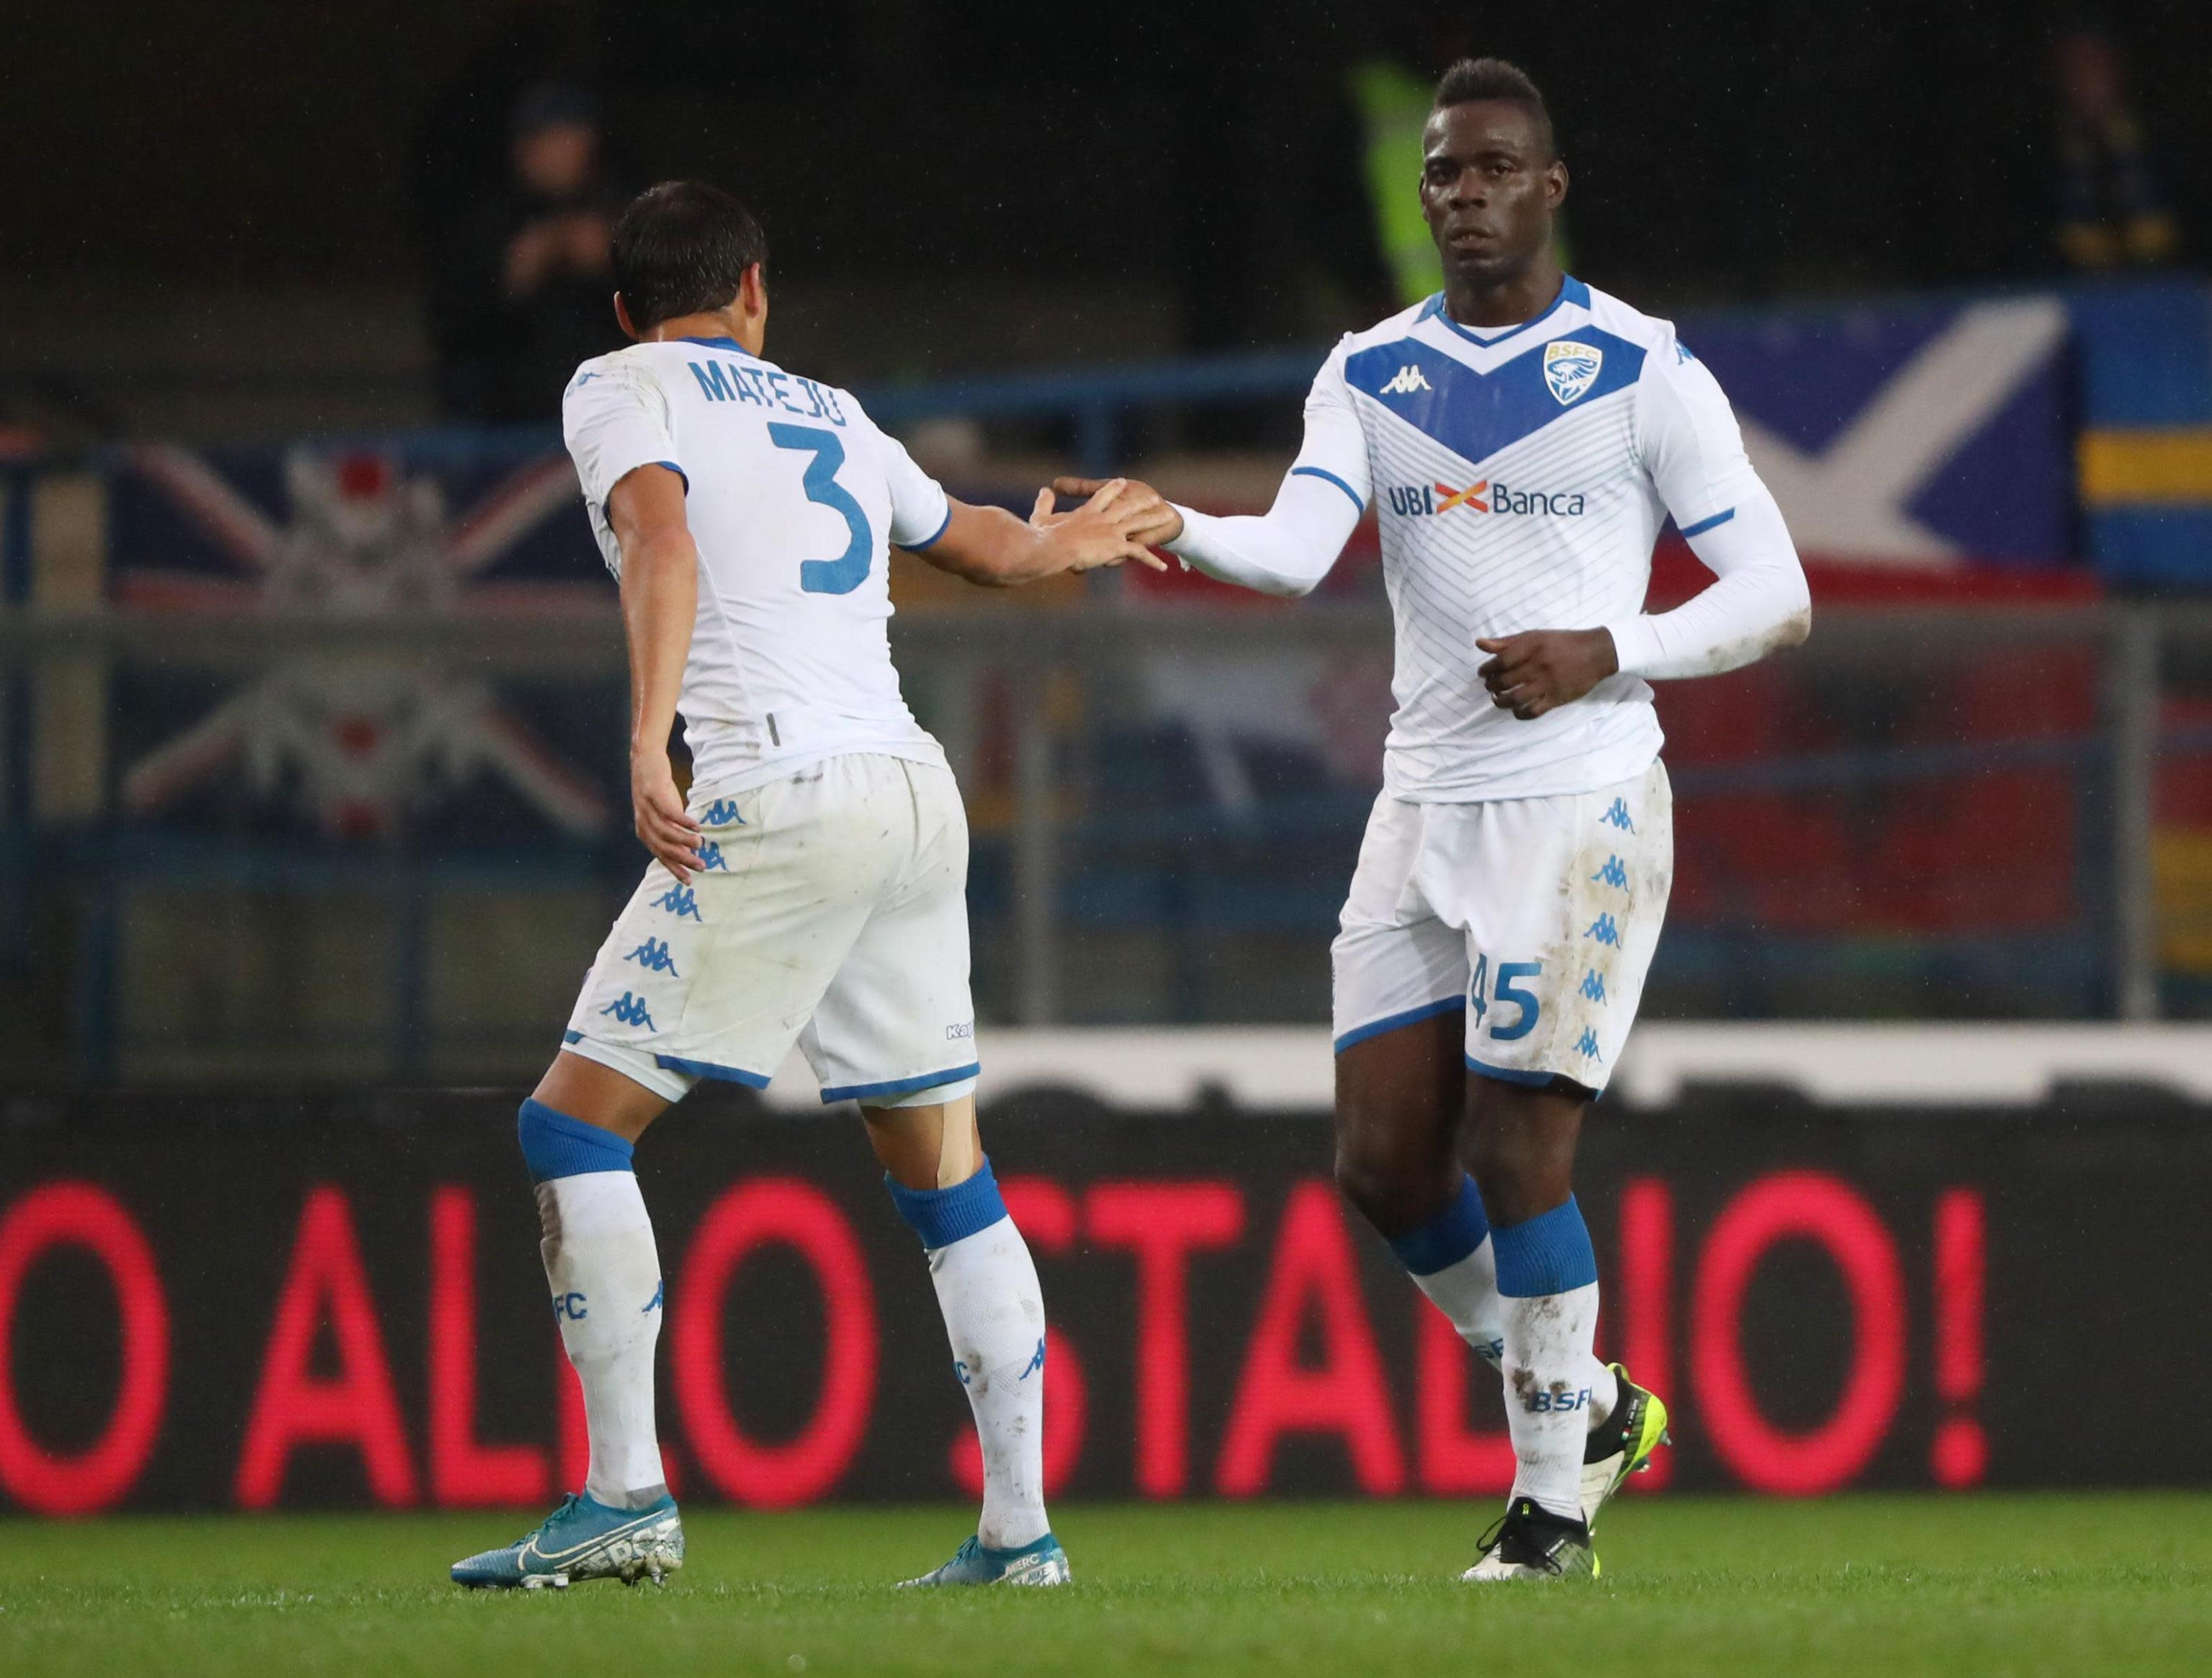 Brescia's Mario Balotelli, right, is congratulated by a teammate after scoring his side's first goal during the Italian Serie A soccer match between Verona and Brescia at the Bentegodi stadium in Verona, Italy, Sunday, Nov. 3, 2019. Verona supporters' racist chants upset the Italian bomber who also kicked the ball to fans in the standings. (Simone Venezia/ANSA via AP)